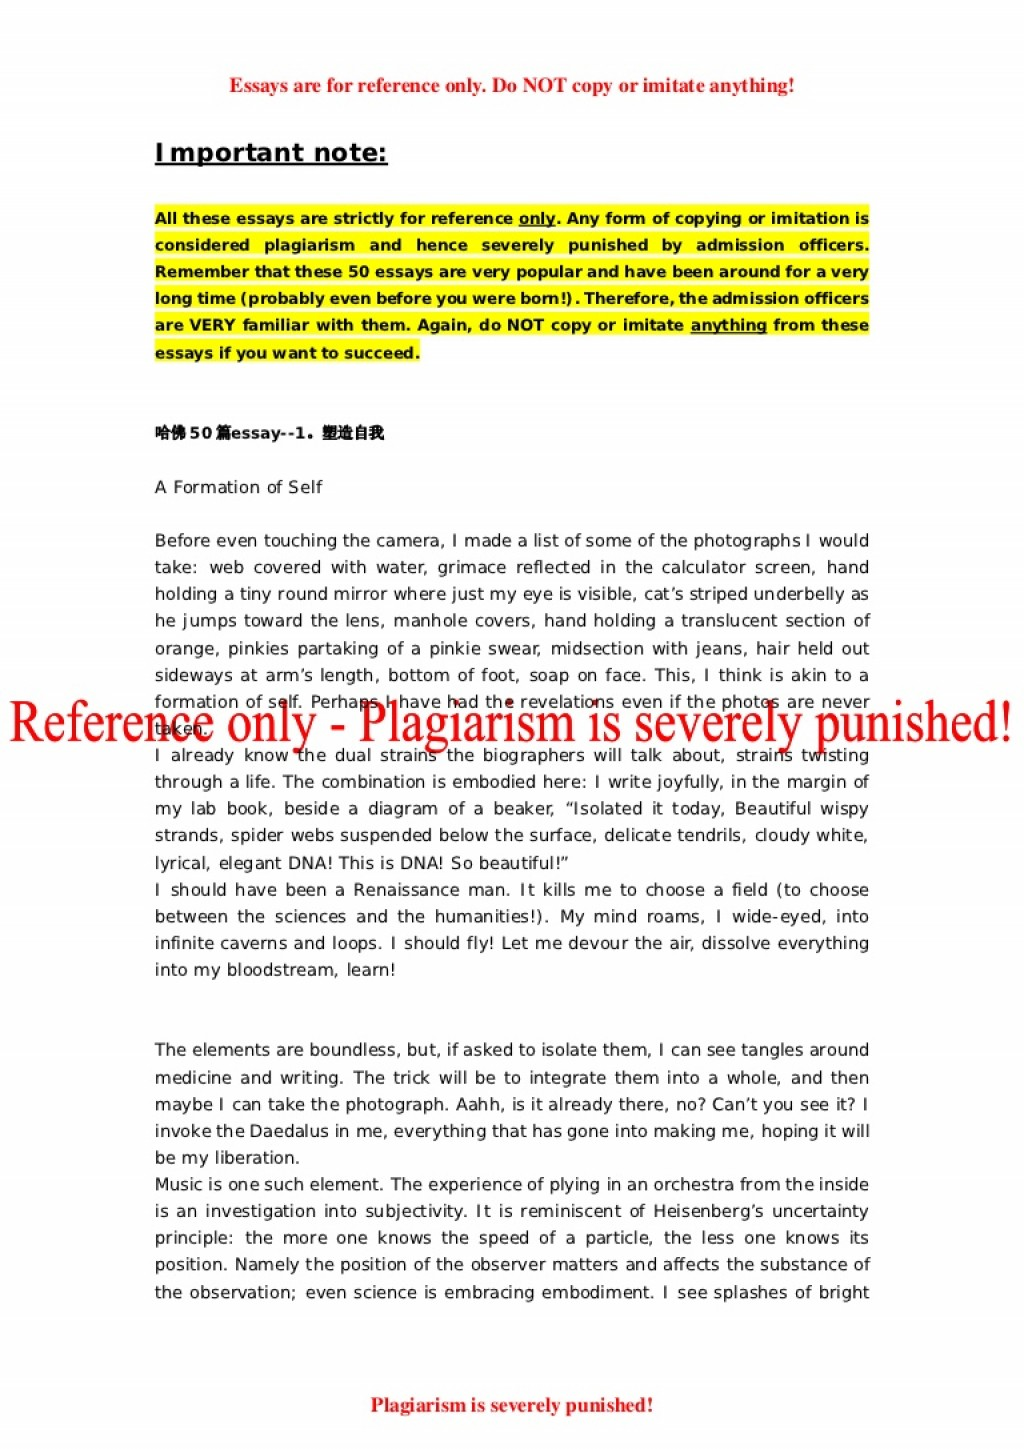 002 Harvard Application Essay 50successfulharvardapplicationessays Phpapp02 Thumbnail Singular Mba Essays Sample Examples Large